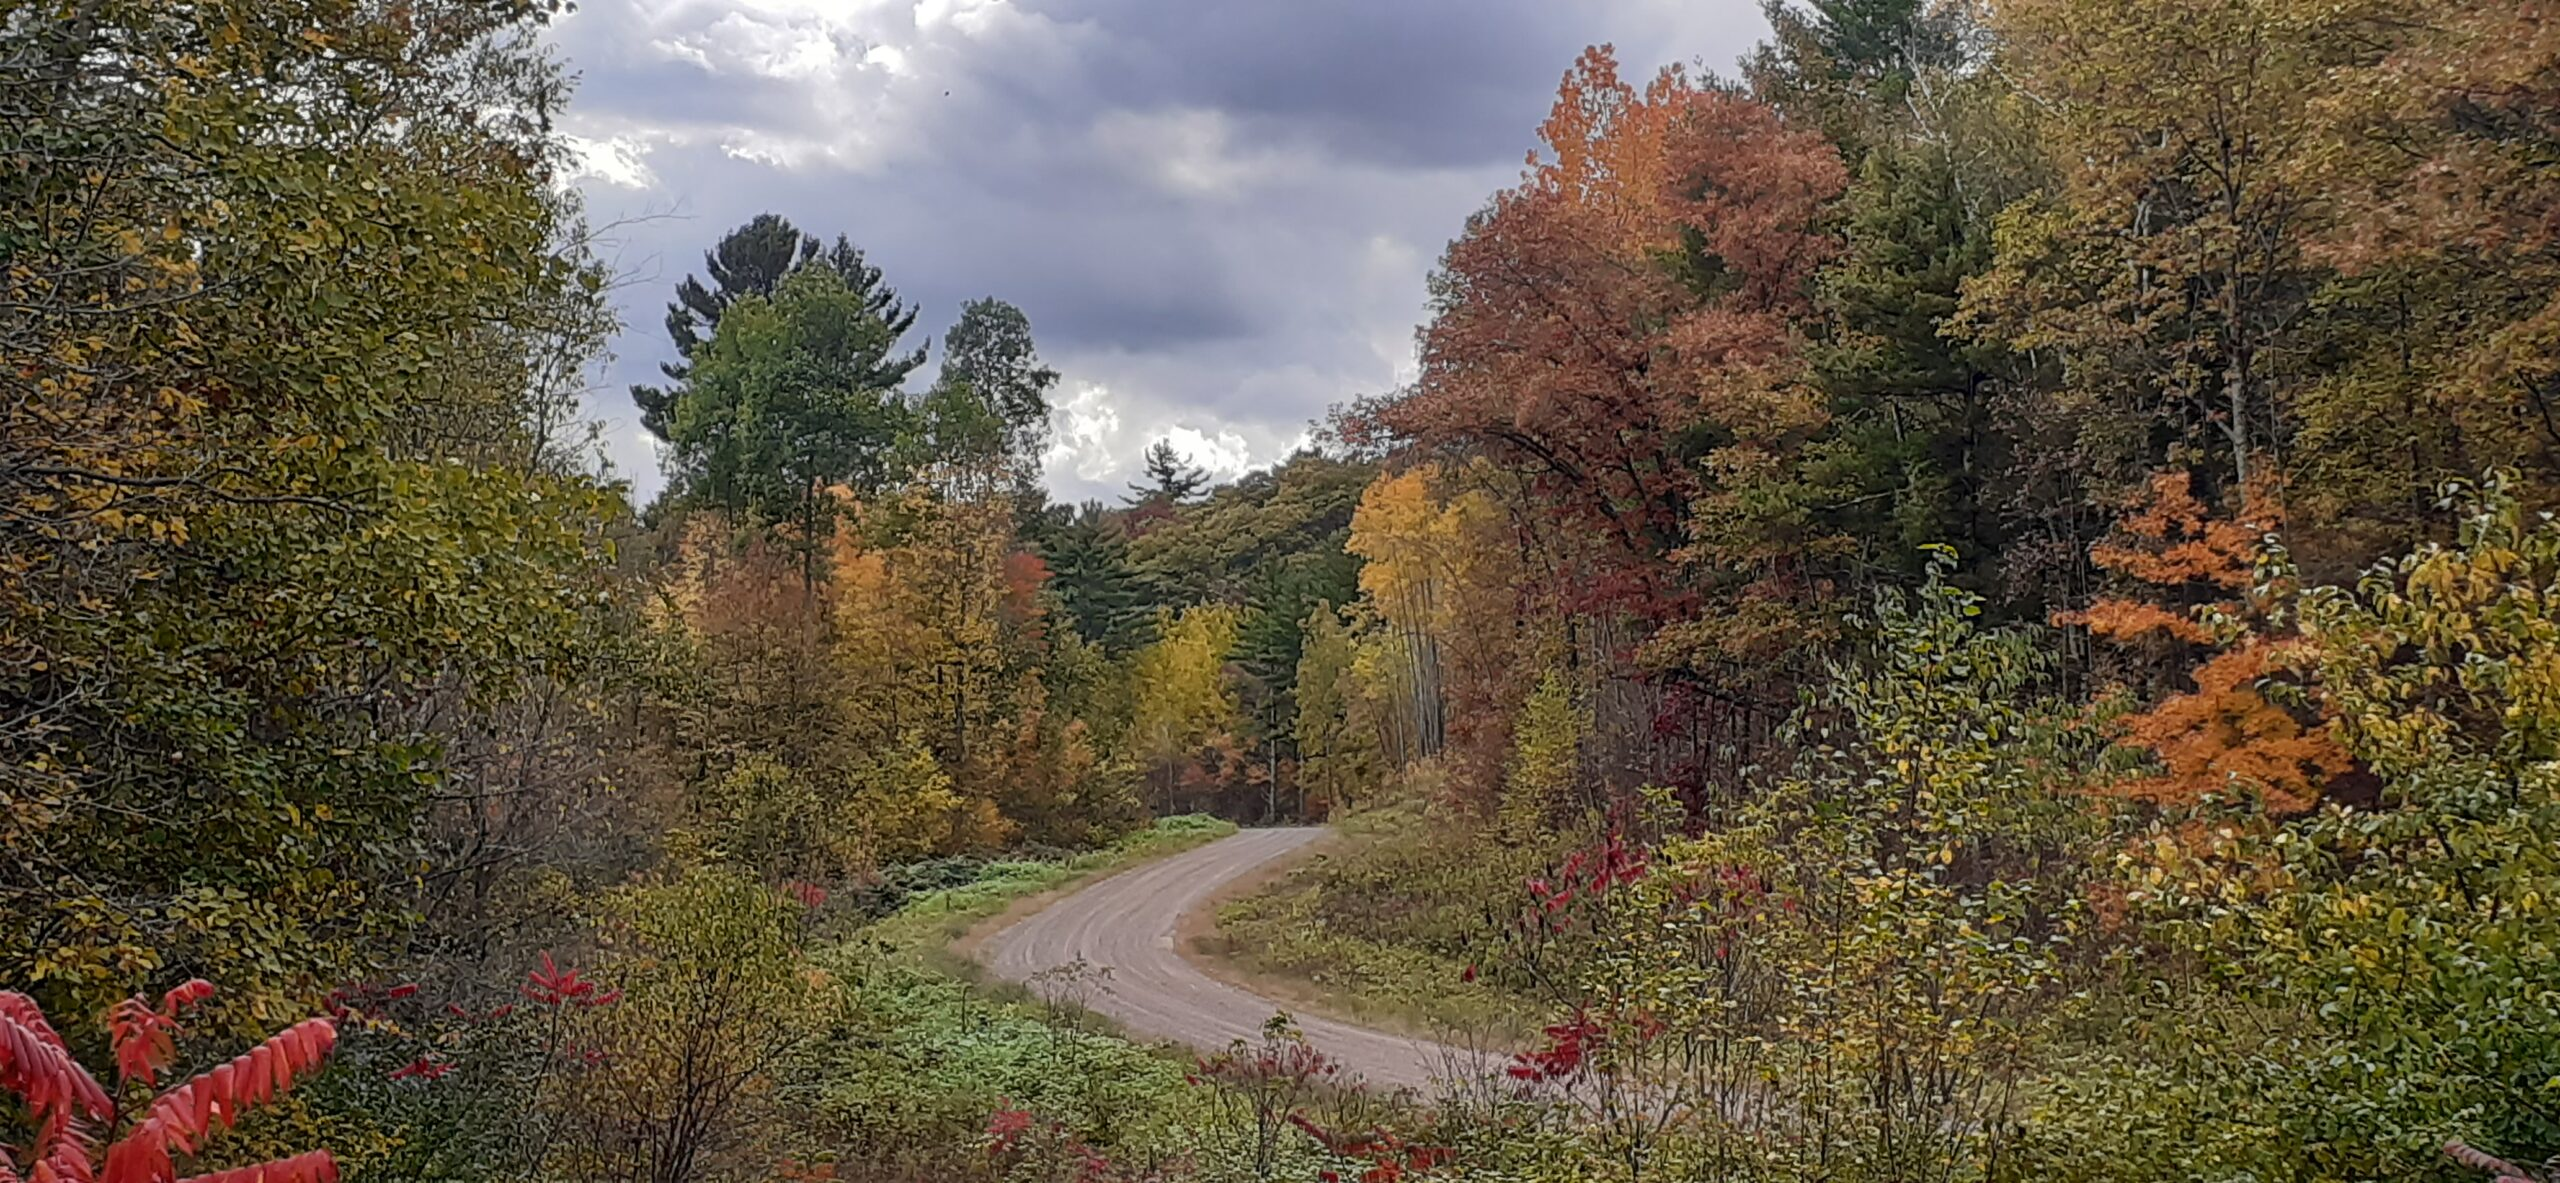 Exploring an unknown winding forest road, Autumn 2020 Northwest Wisconsin